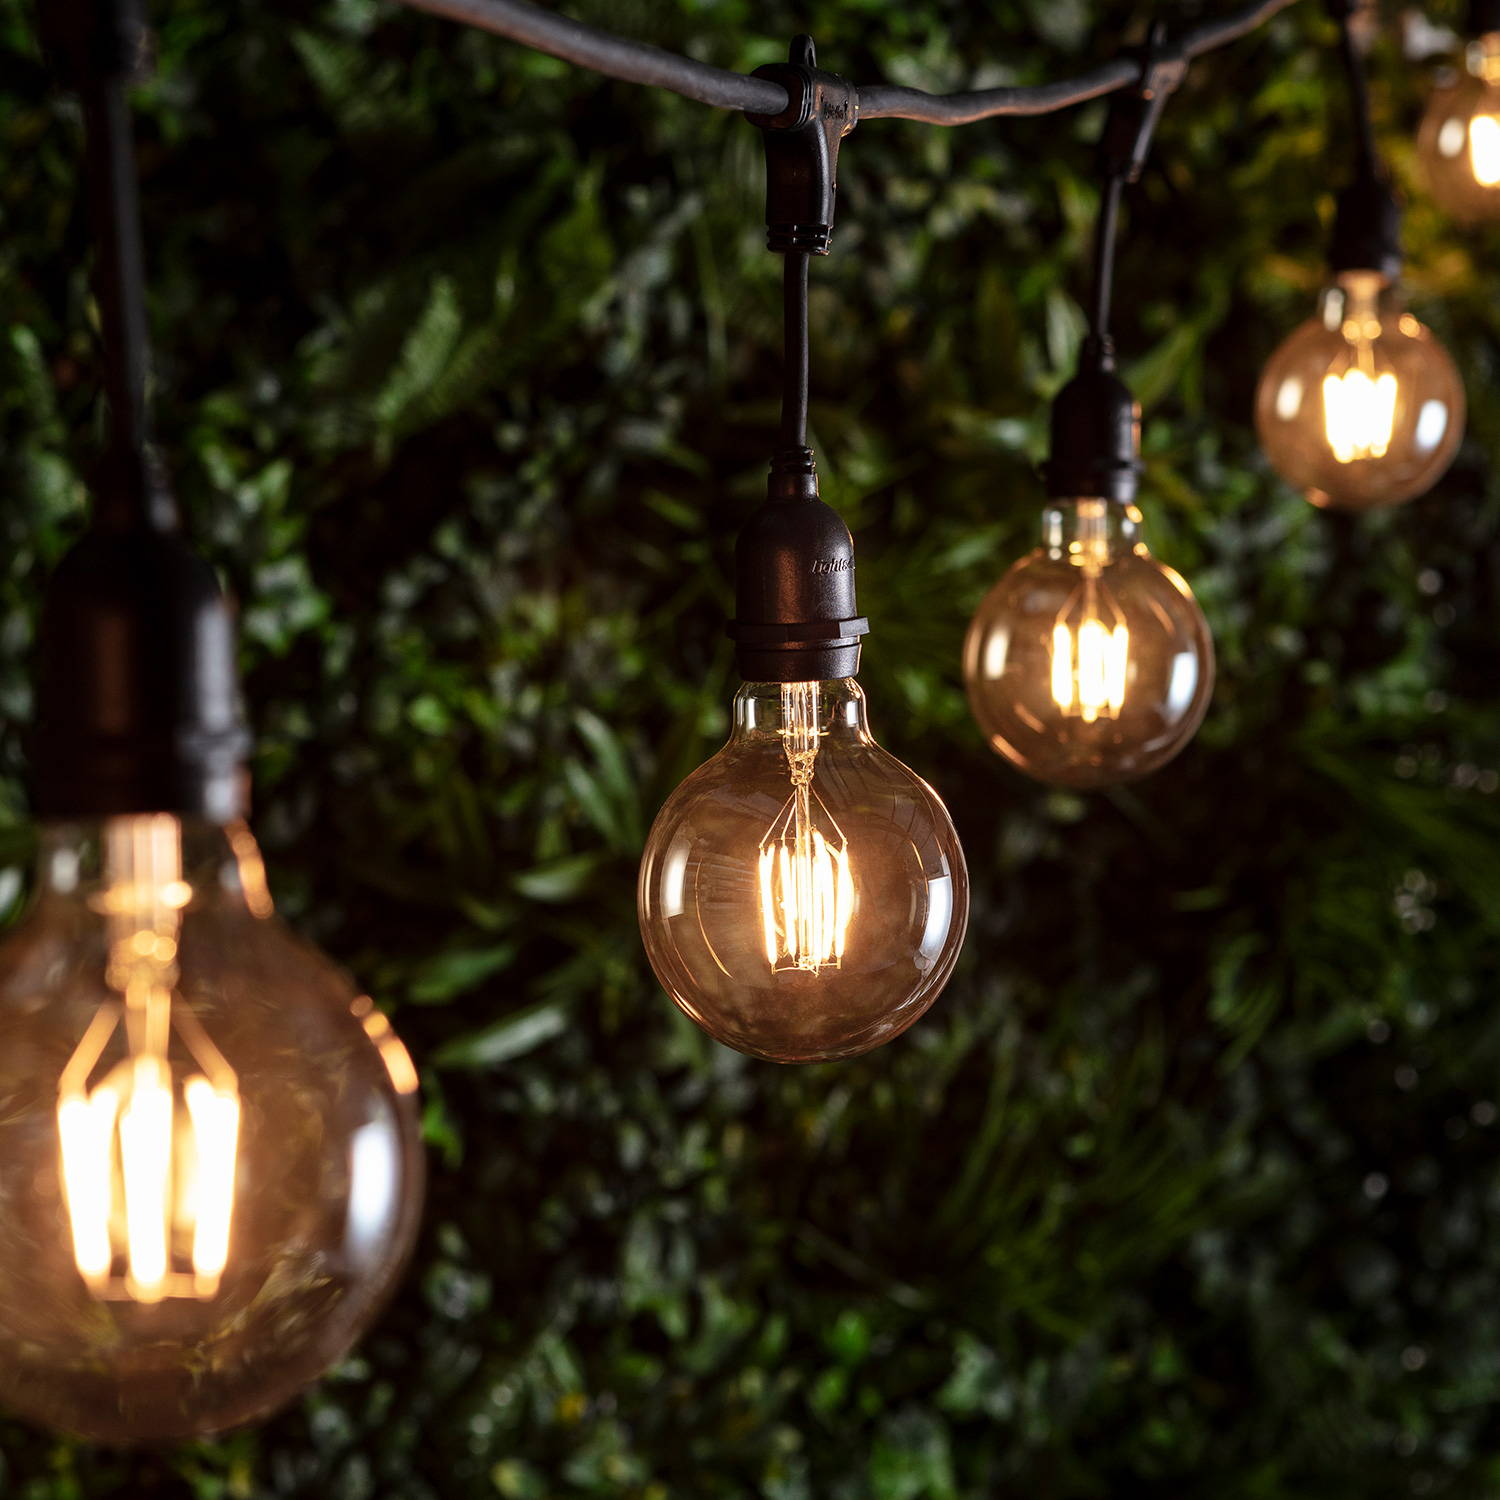 Large globe traditional style bulbs  on a festoon string in a green garden setting